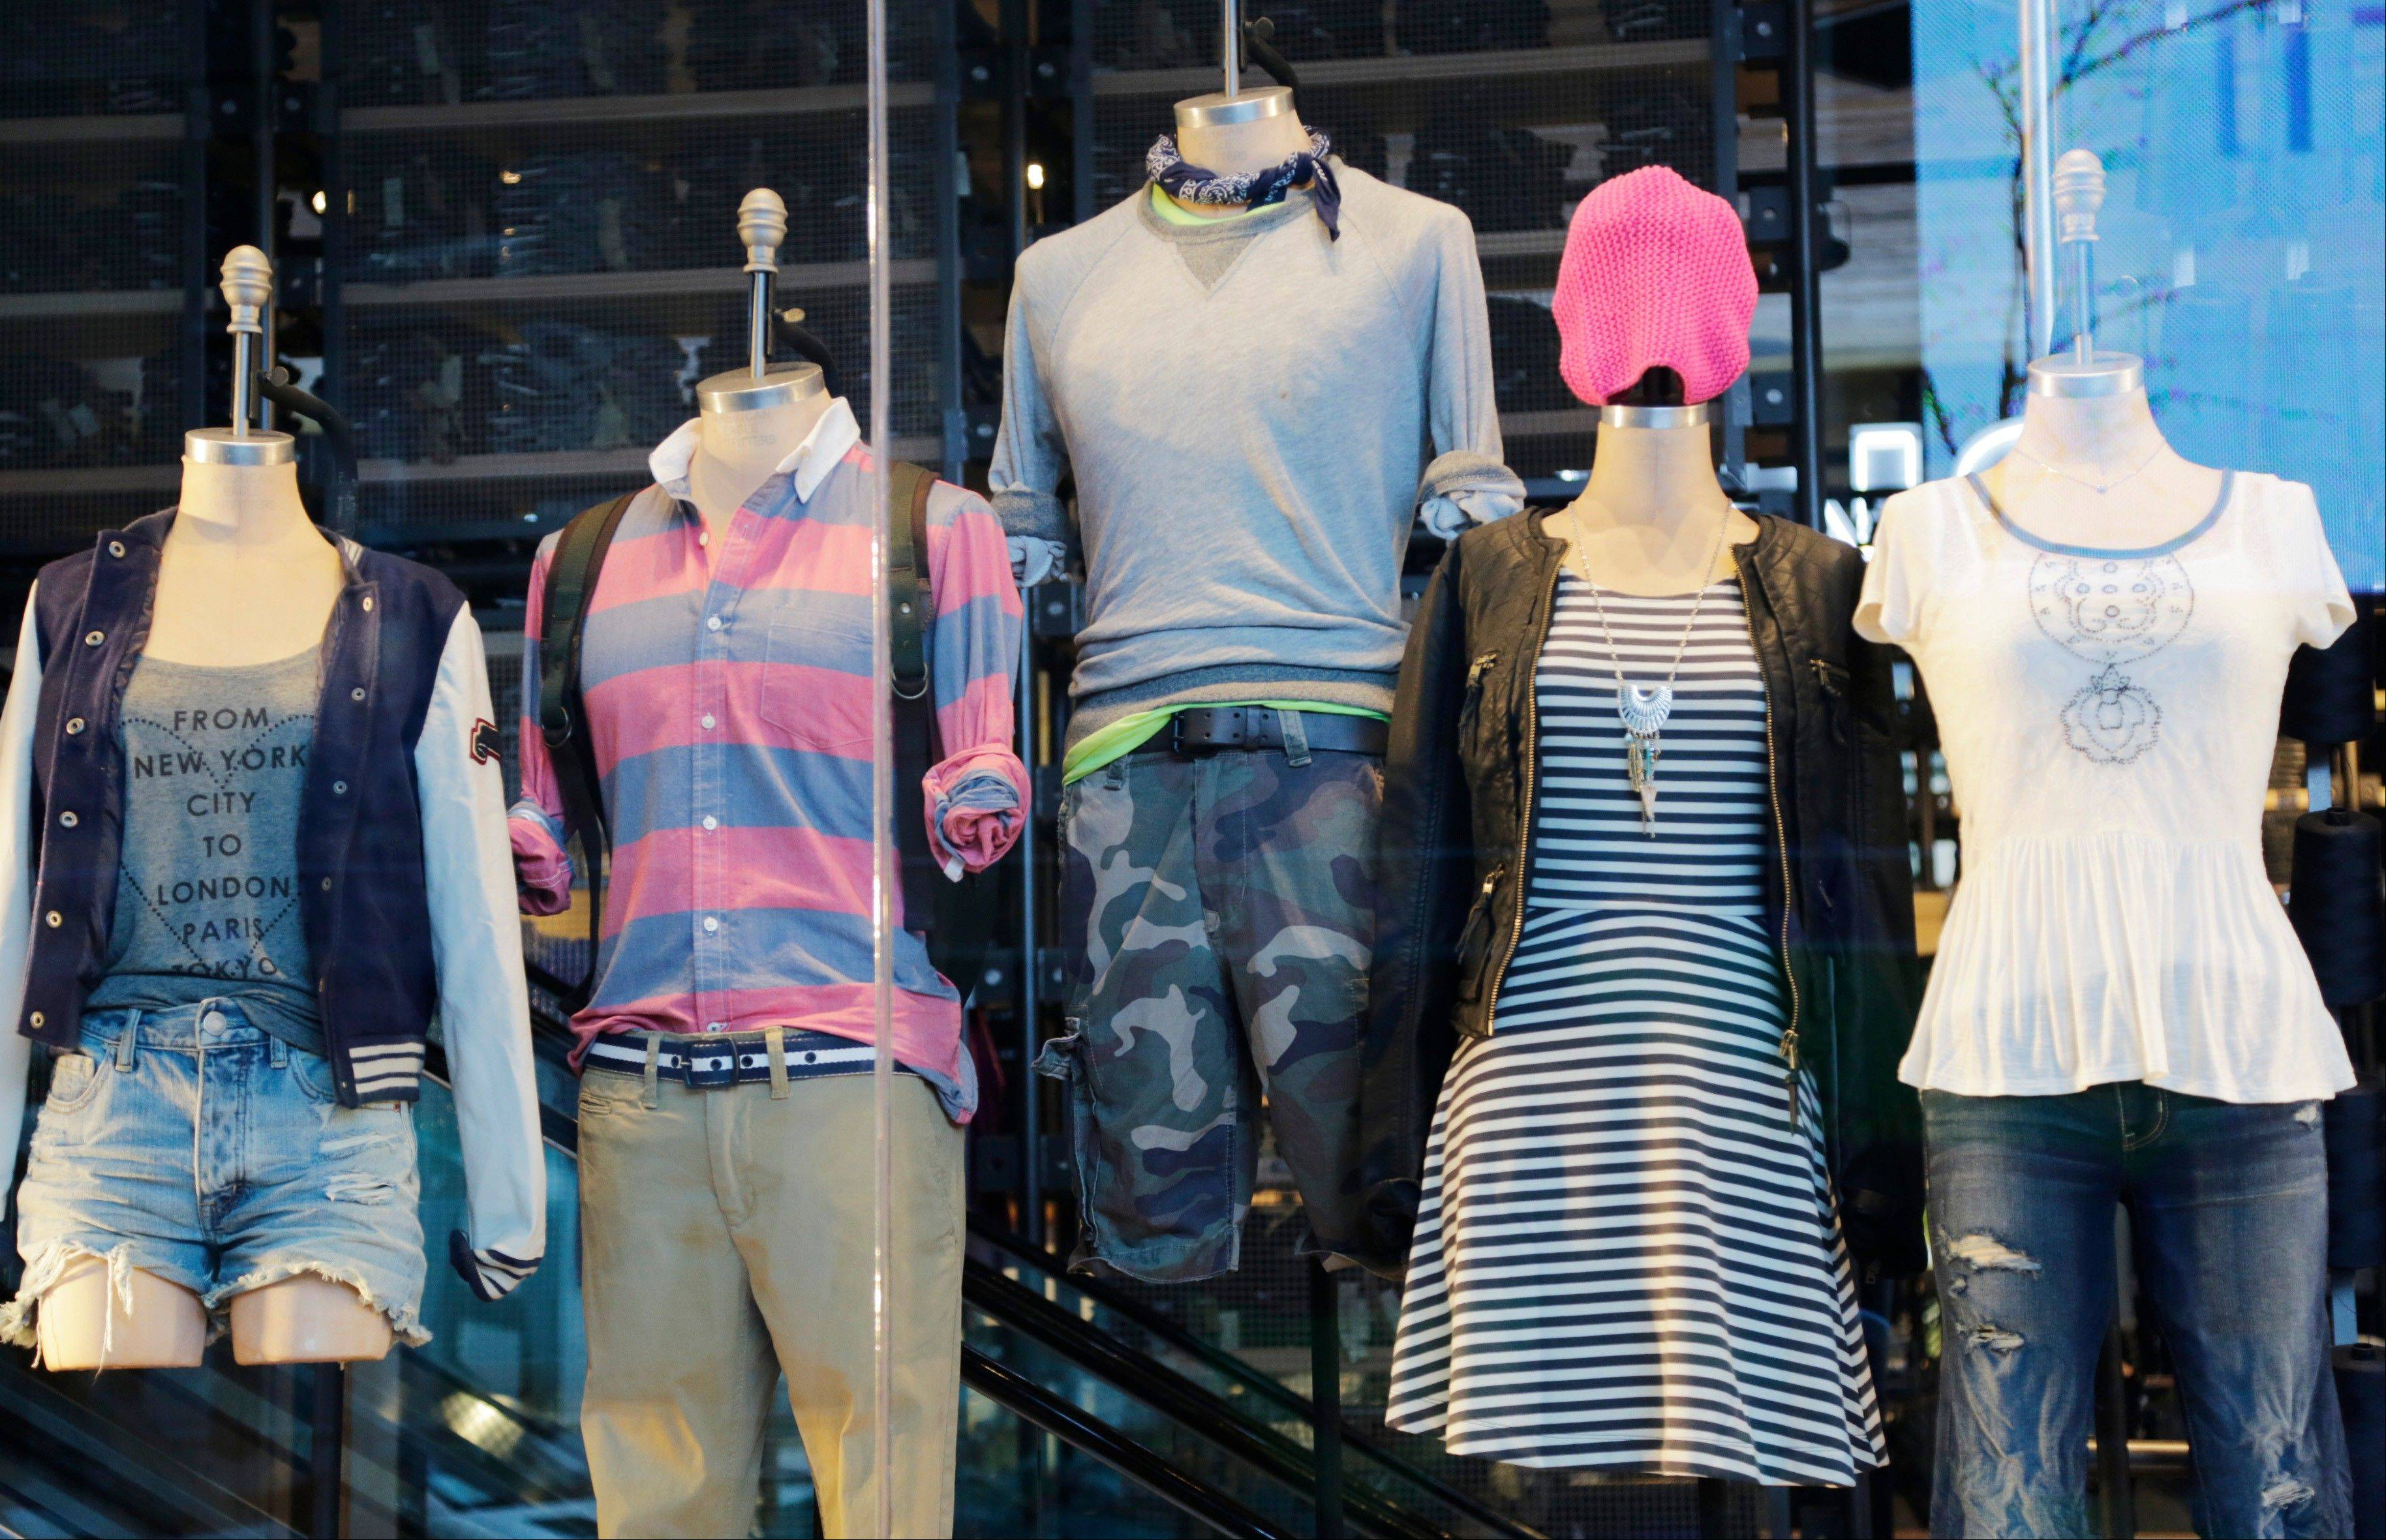 In this photo of July 31, 2013, back-to school fashions are displayed at American Eagle Outfitters in New York's Times Square.S hoppers, worried about their finances, showed they were more interested in buying discounted summer merchandise in July than in picking up new fall clothing for their children, according to figures released Thursday, Aug. 8, 2013. (AP Photo/Mark Lennihan)